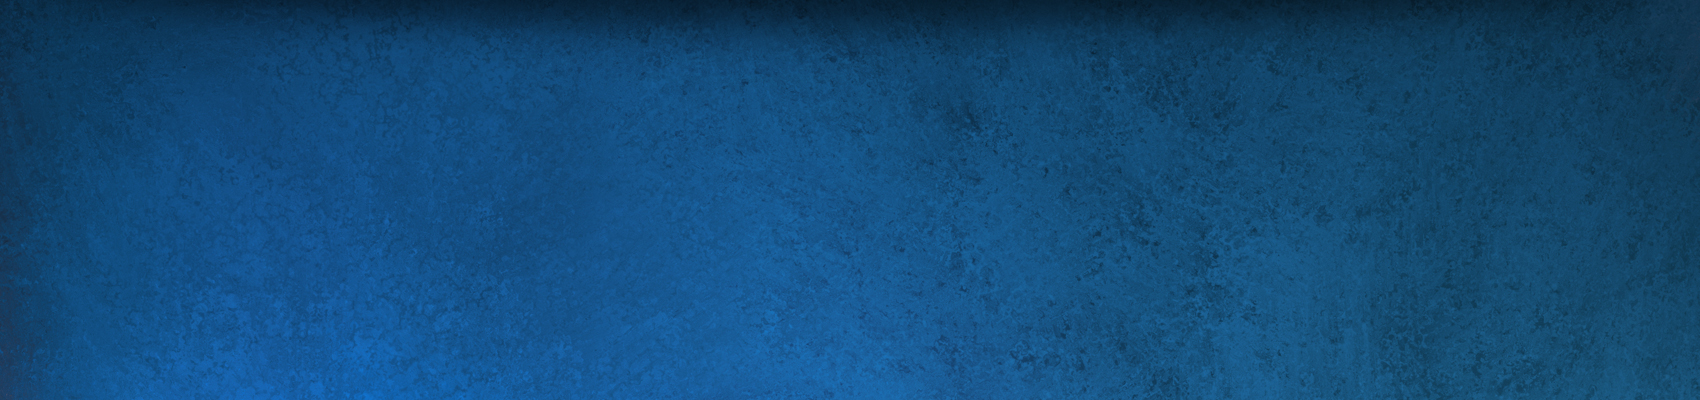 bluebackground5